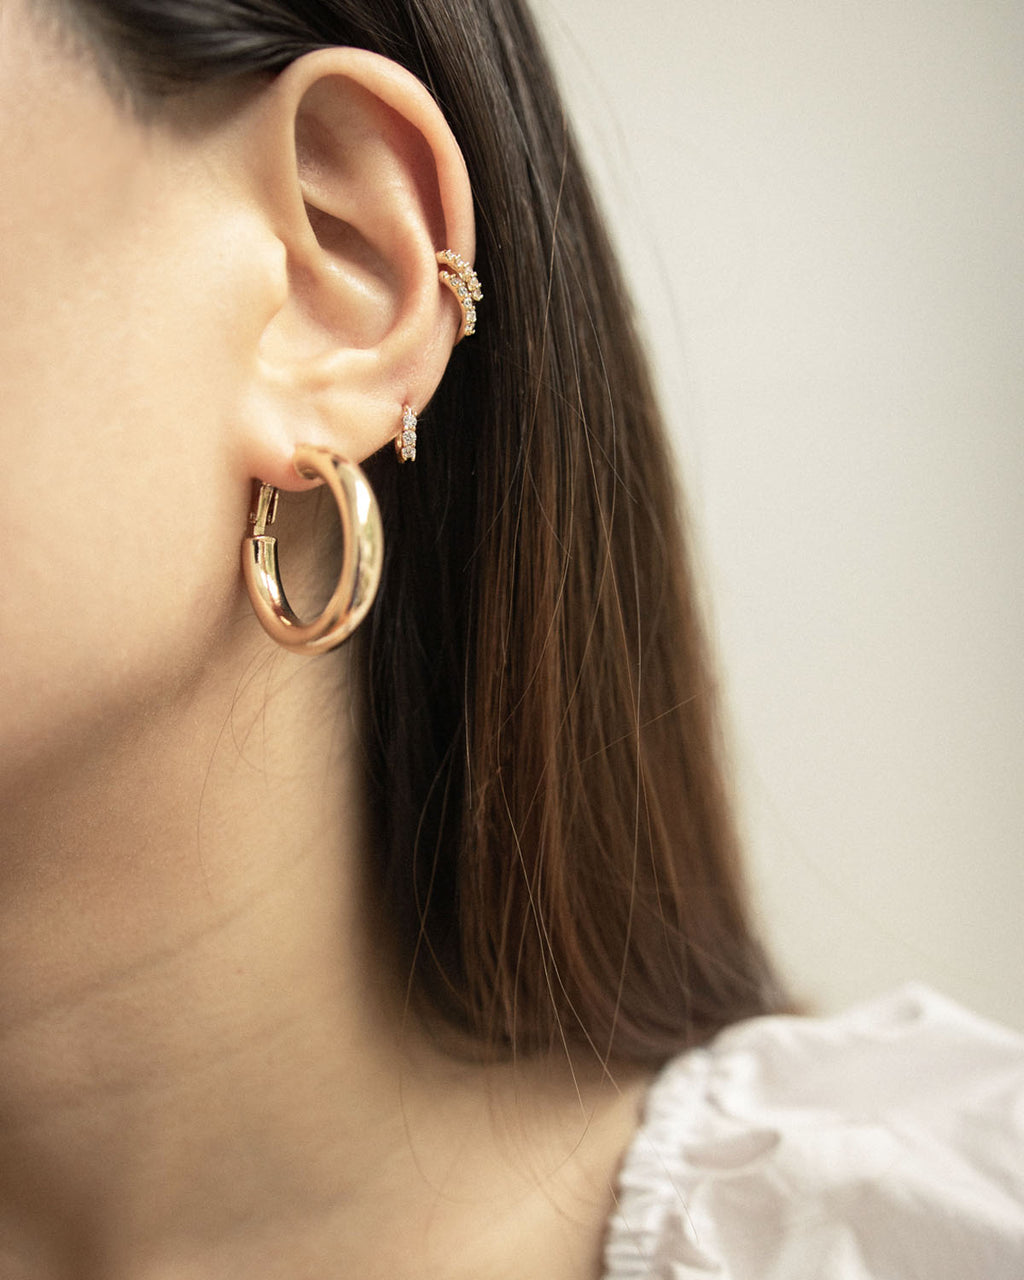 Wearing golden hoop earrings of multiple sizes on same ear - The Hexad